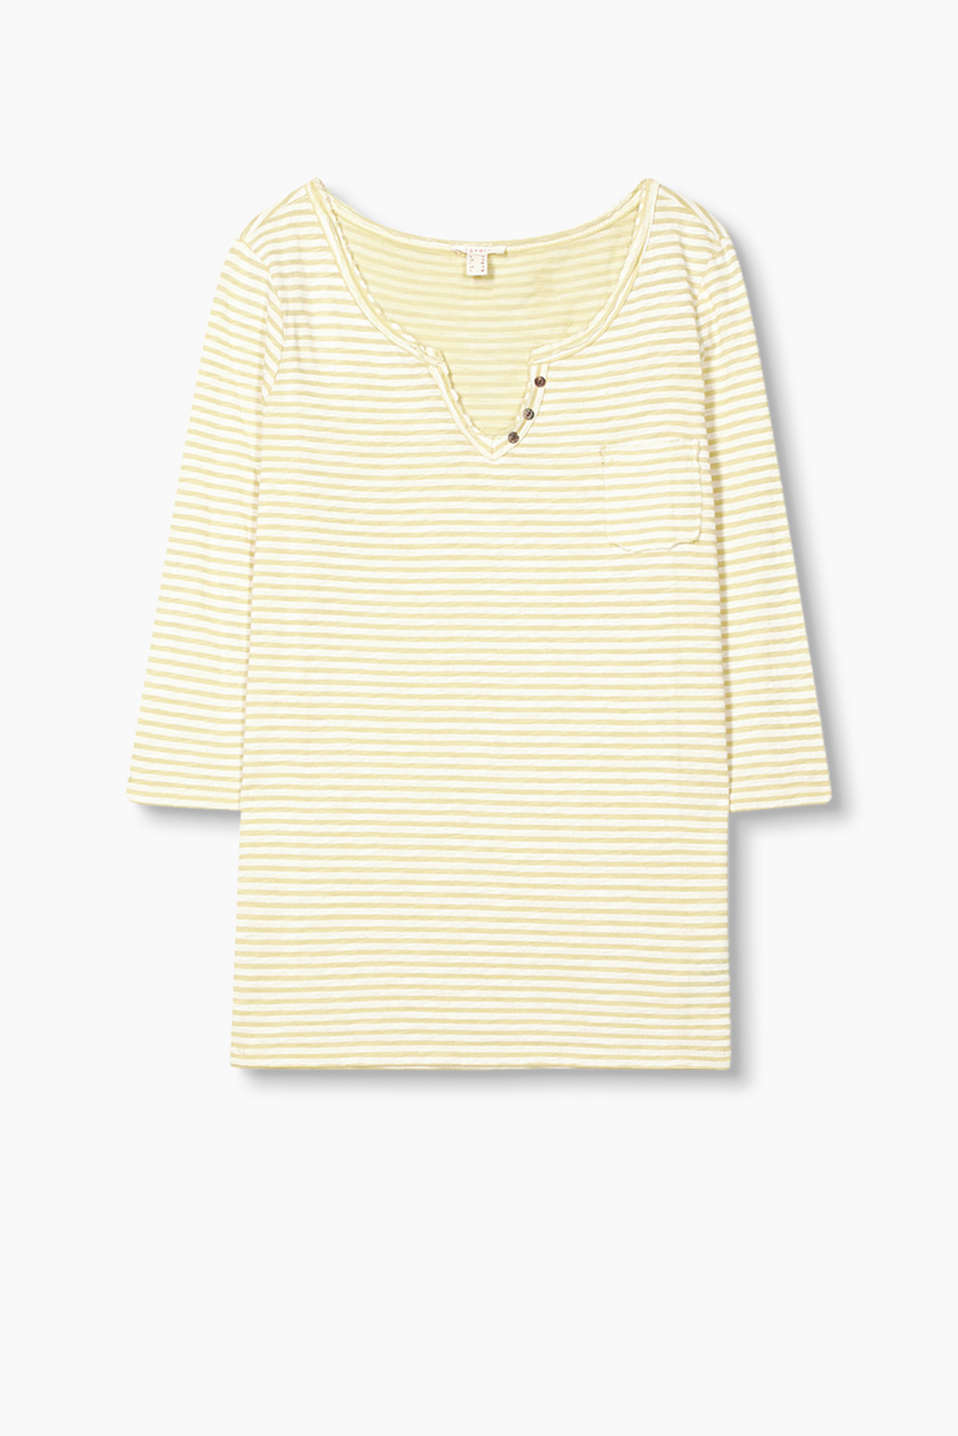 with a Henley neckline, all-over stripes and unfinished edges